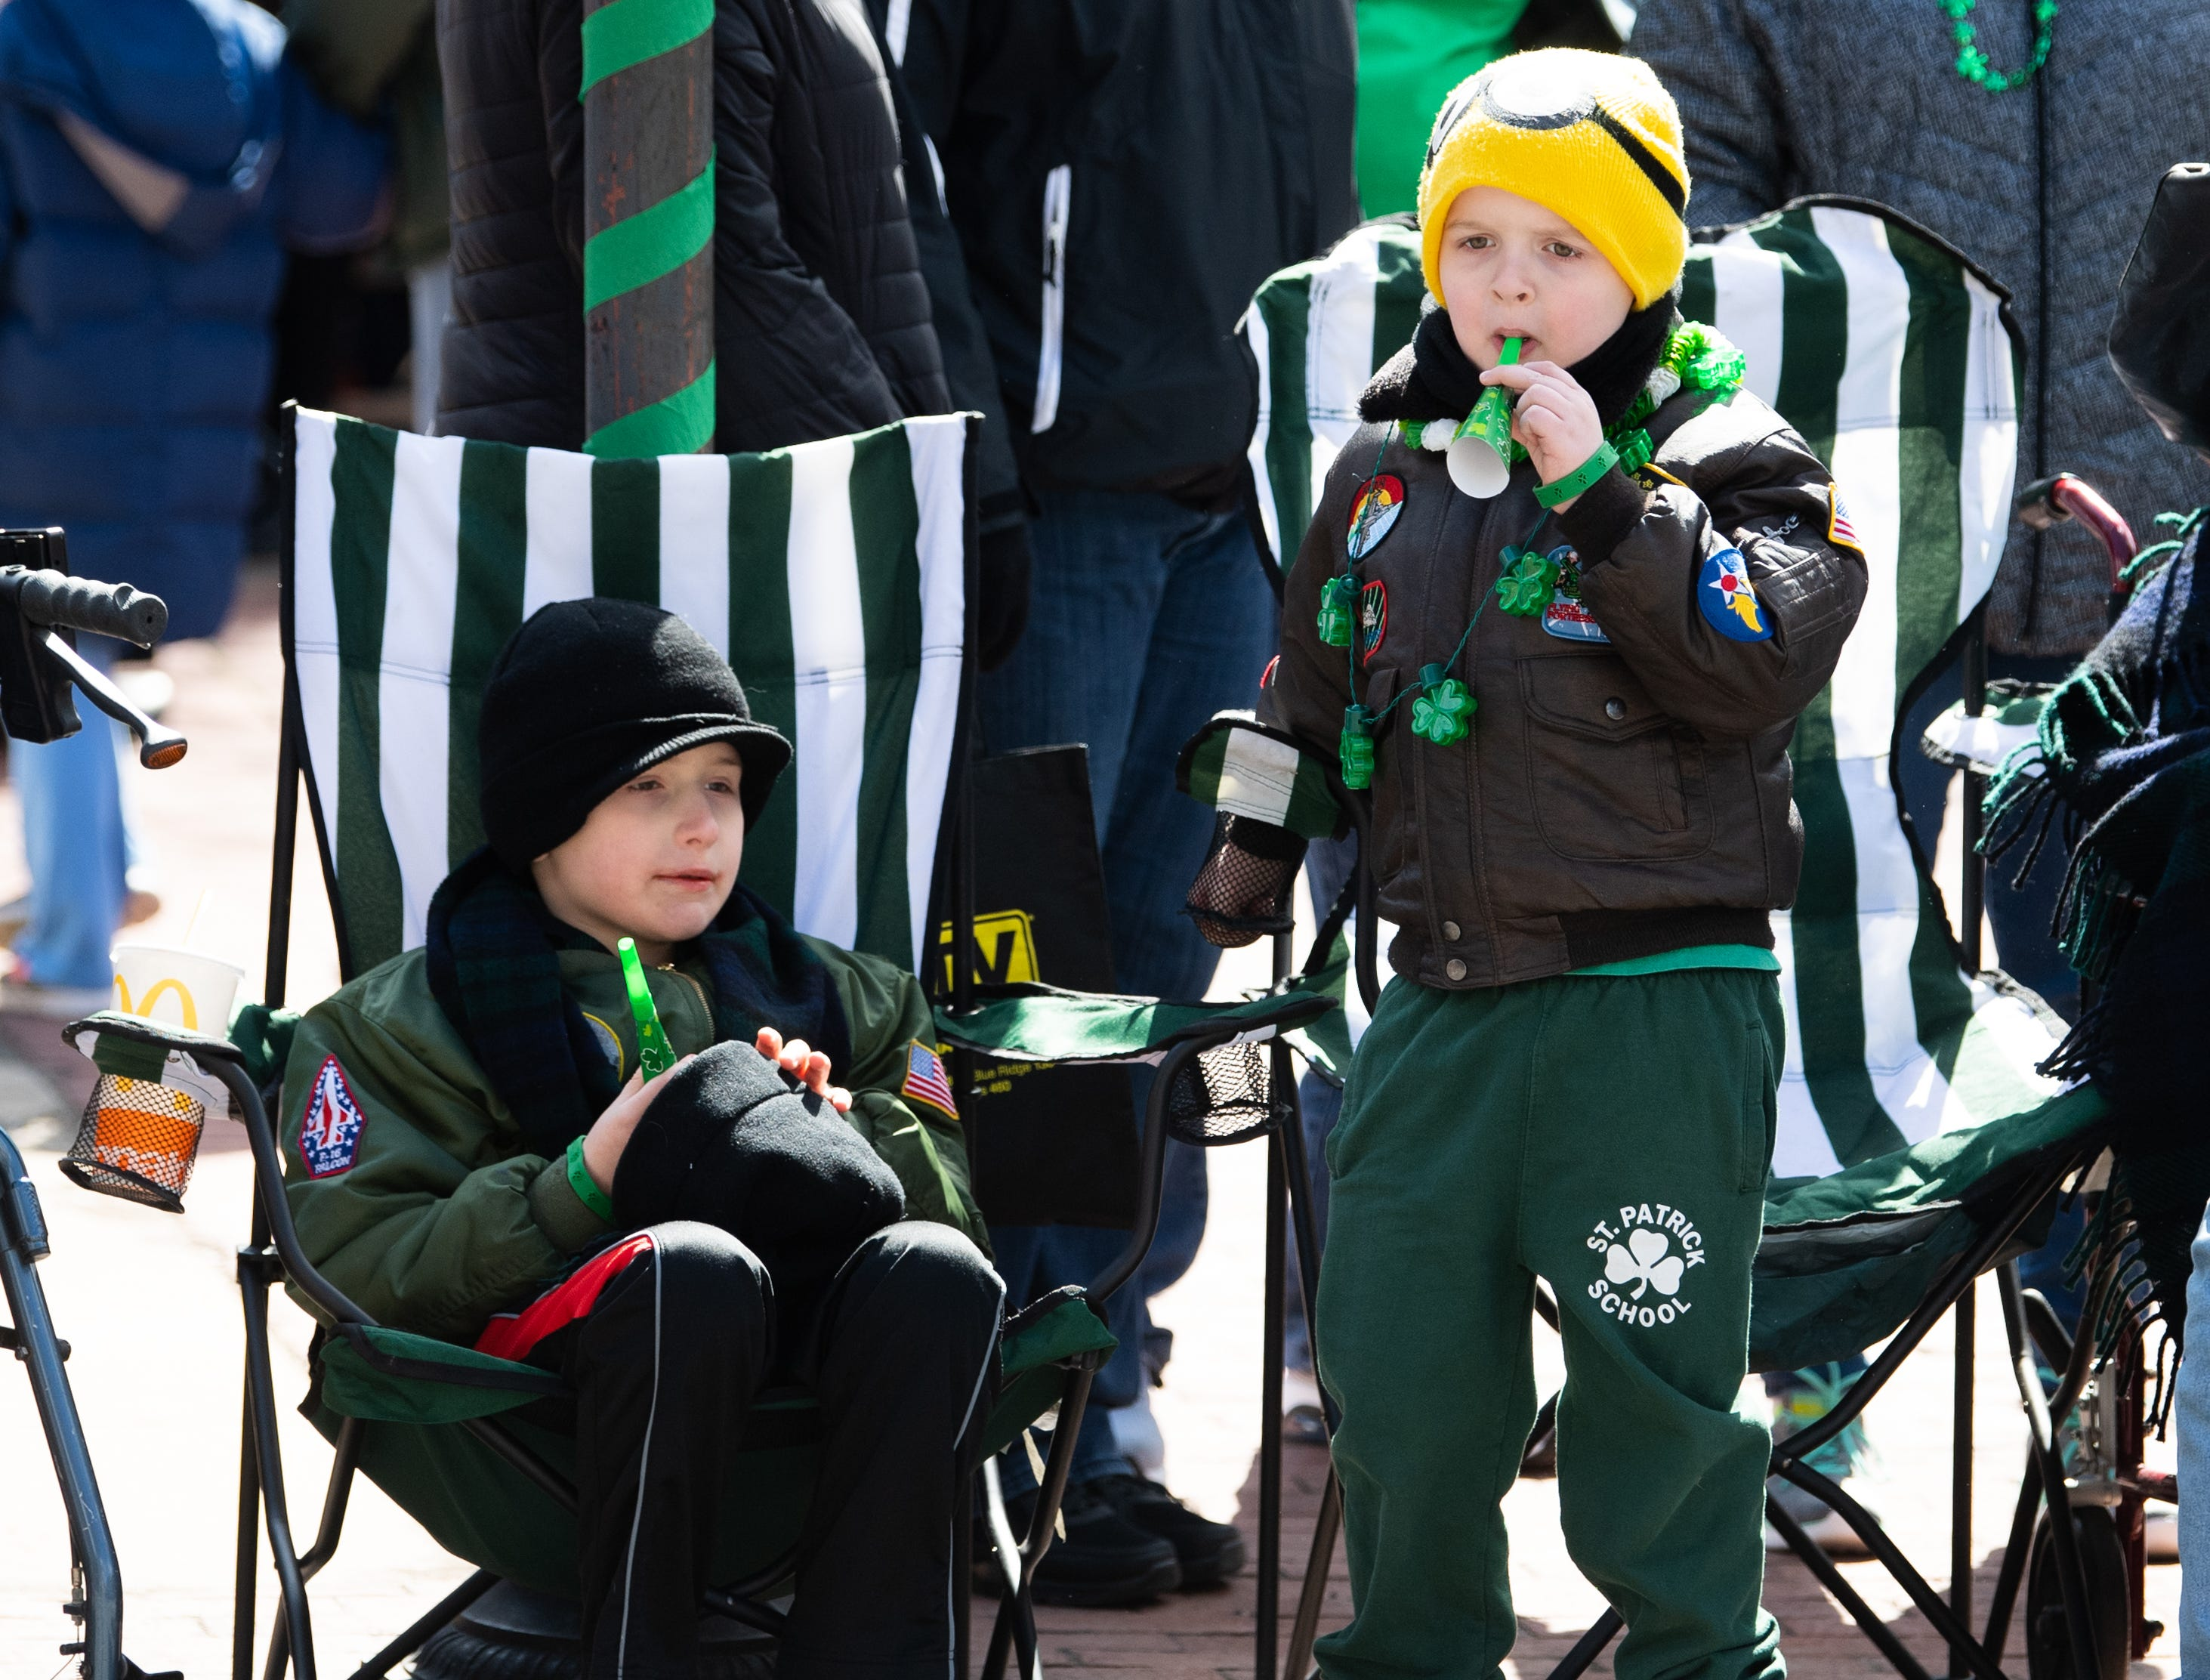 Yorkers watch the 36th Annual St. Patrick's Day Parade, March 16, 2019.